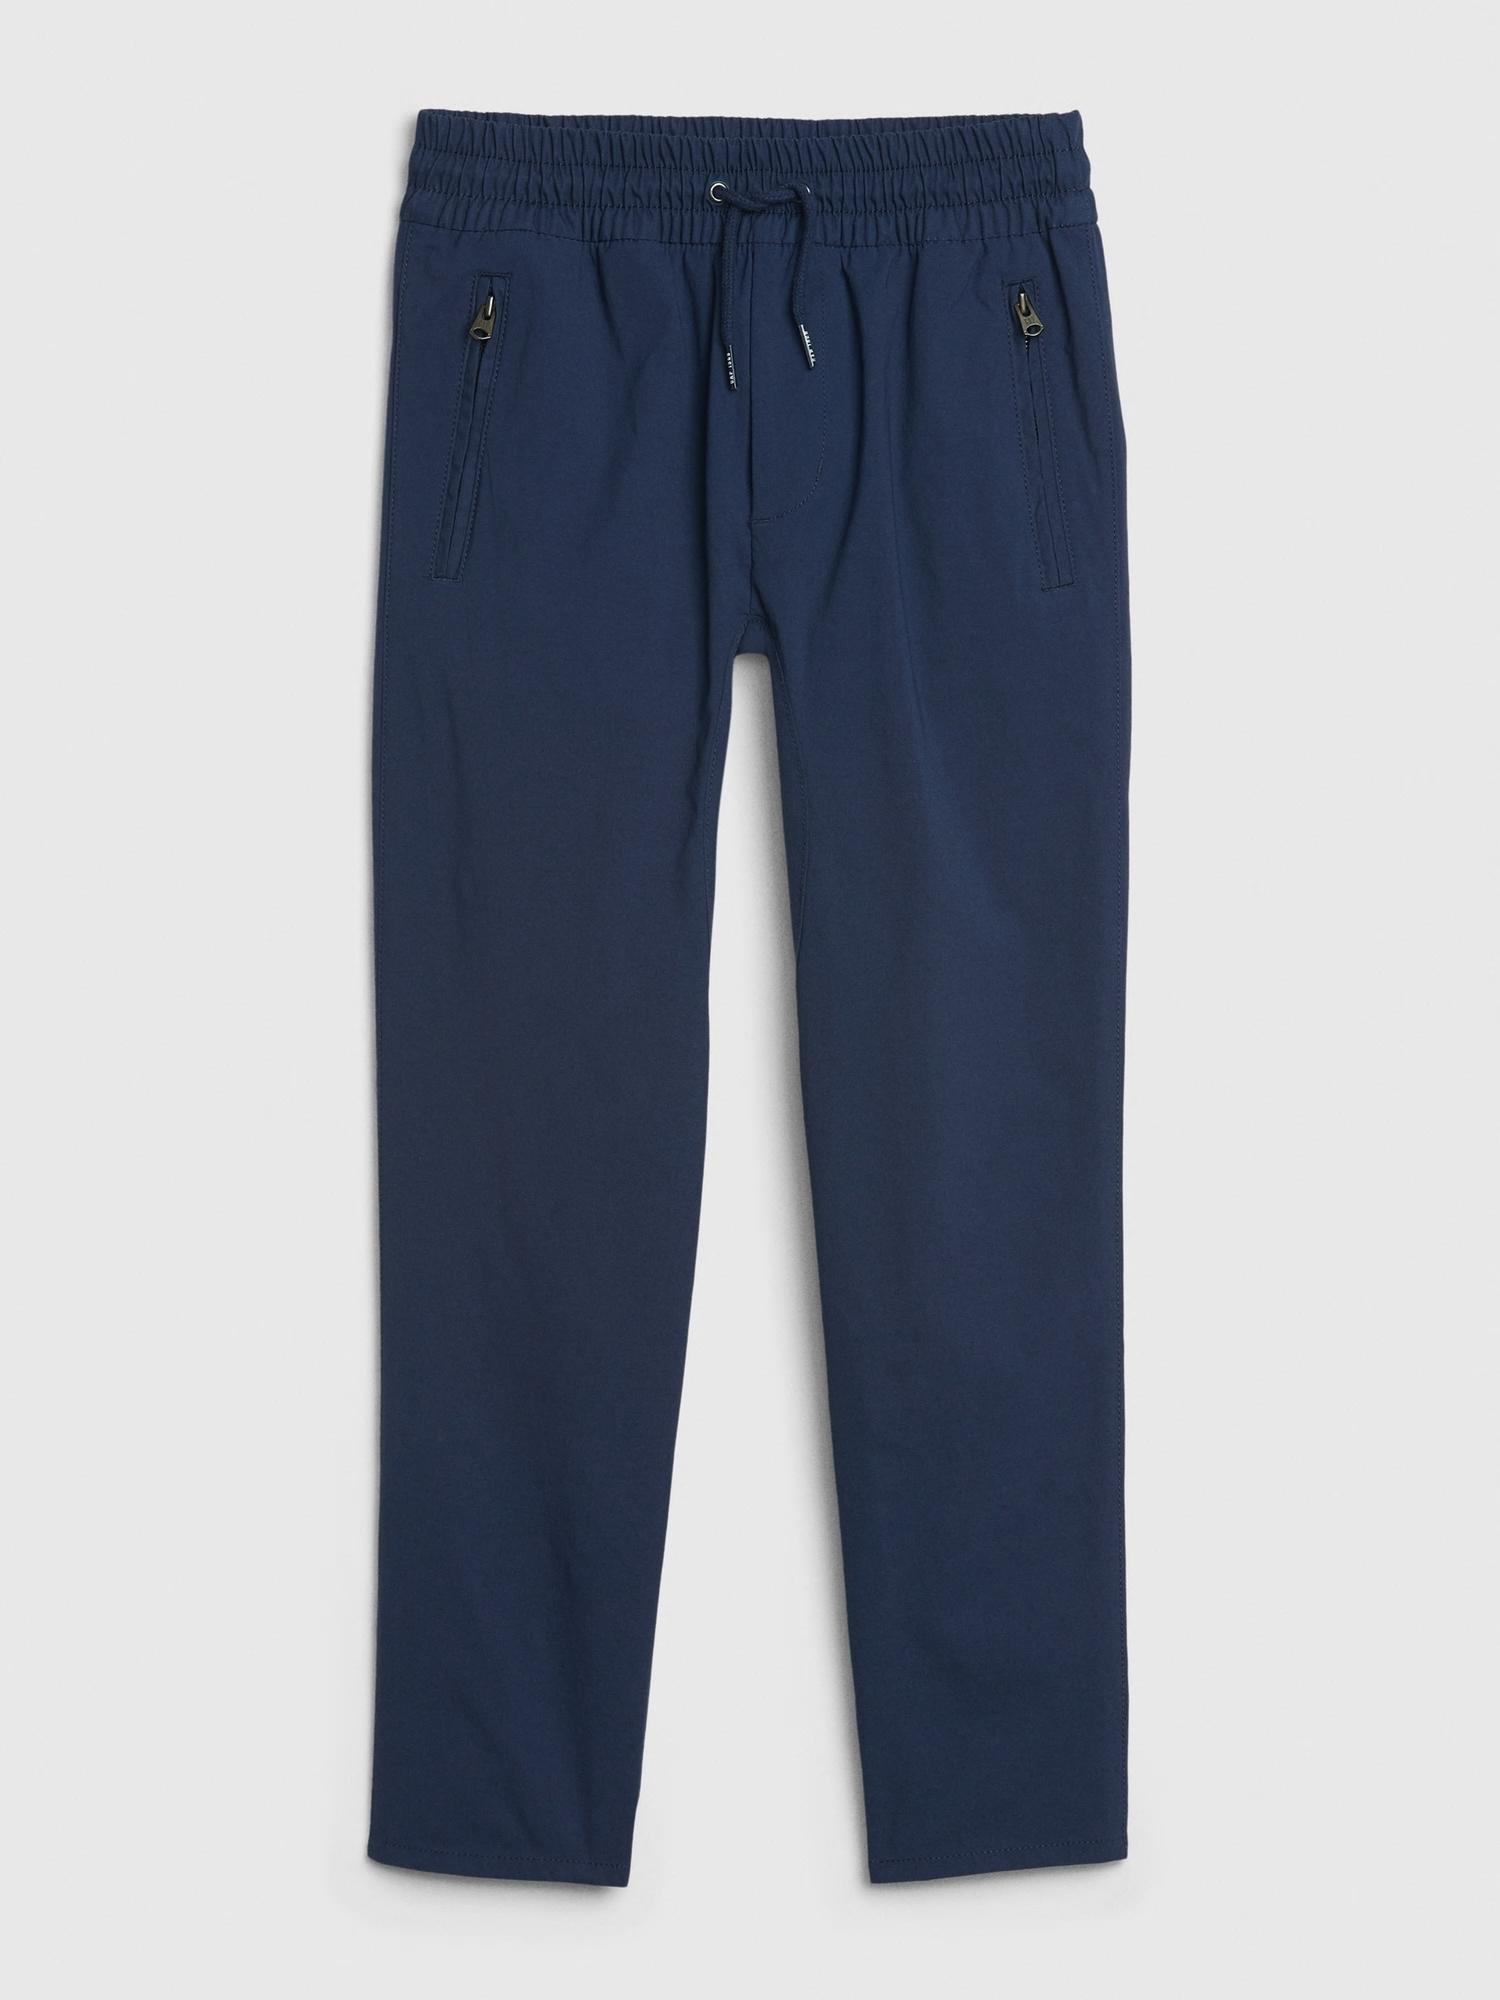 Detské nohavice hybrid pull-on pants with quickdry (1)